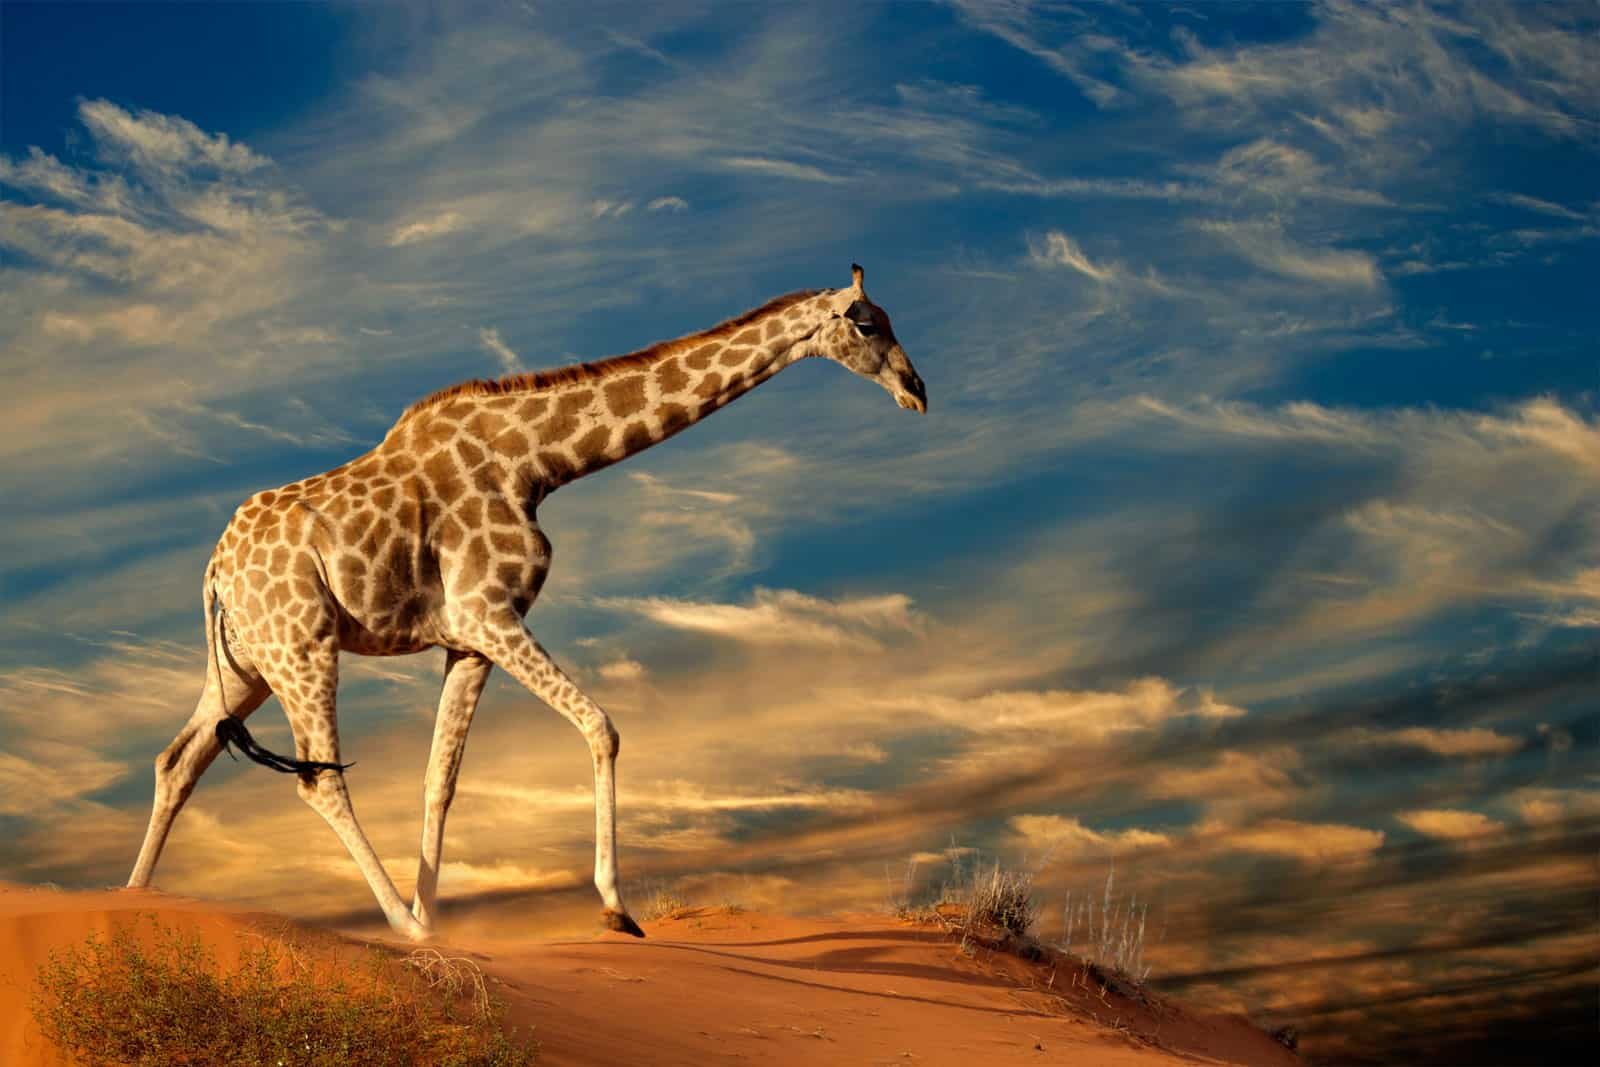 Giraffe on a sand dune in South Africa